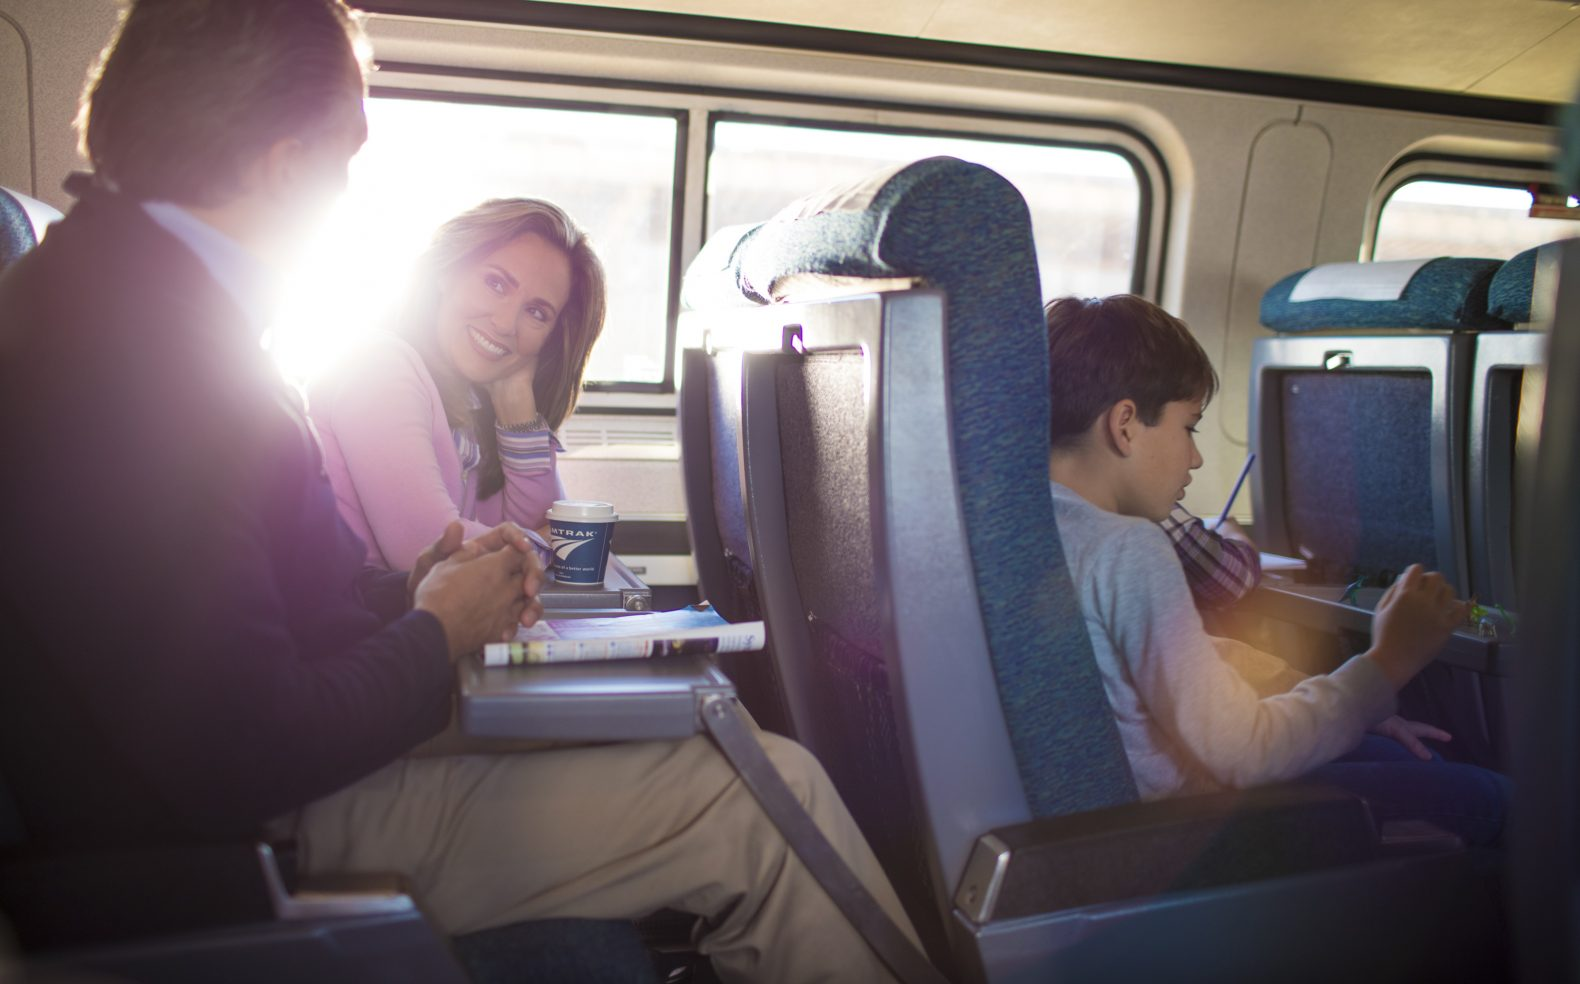 Professional photograph of family enjoying a ride on an Amtrak train on a sunny day